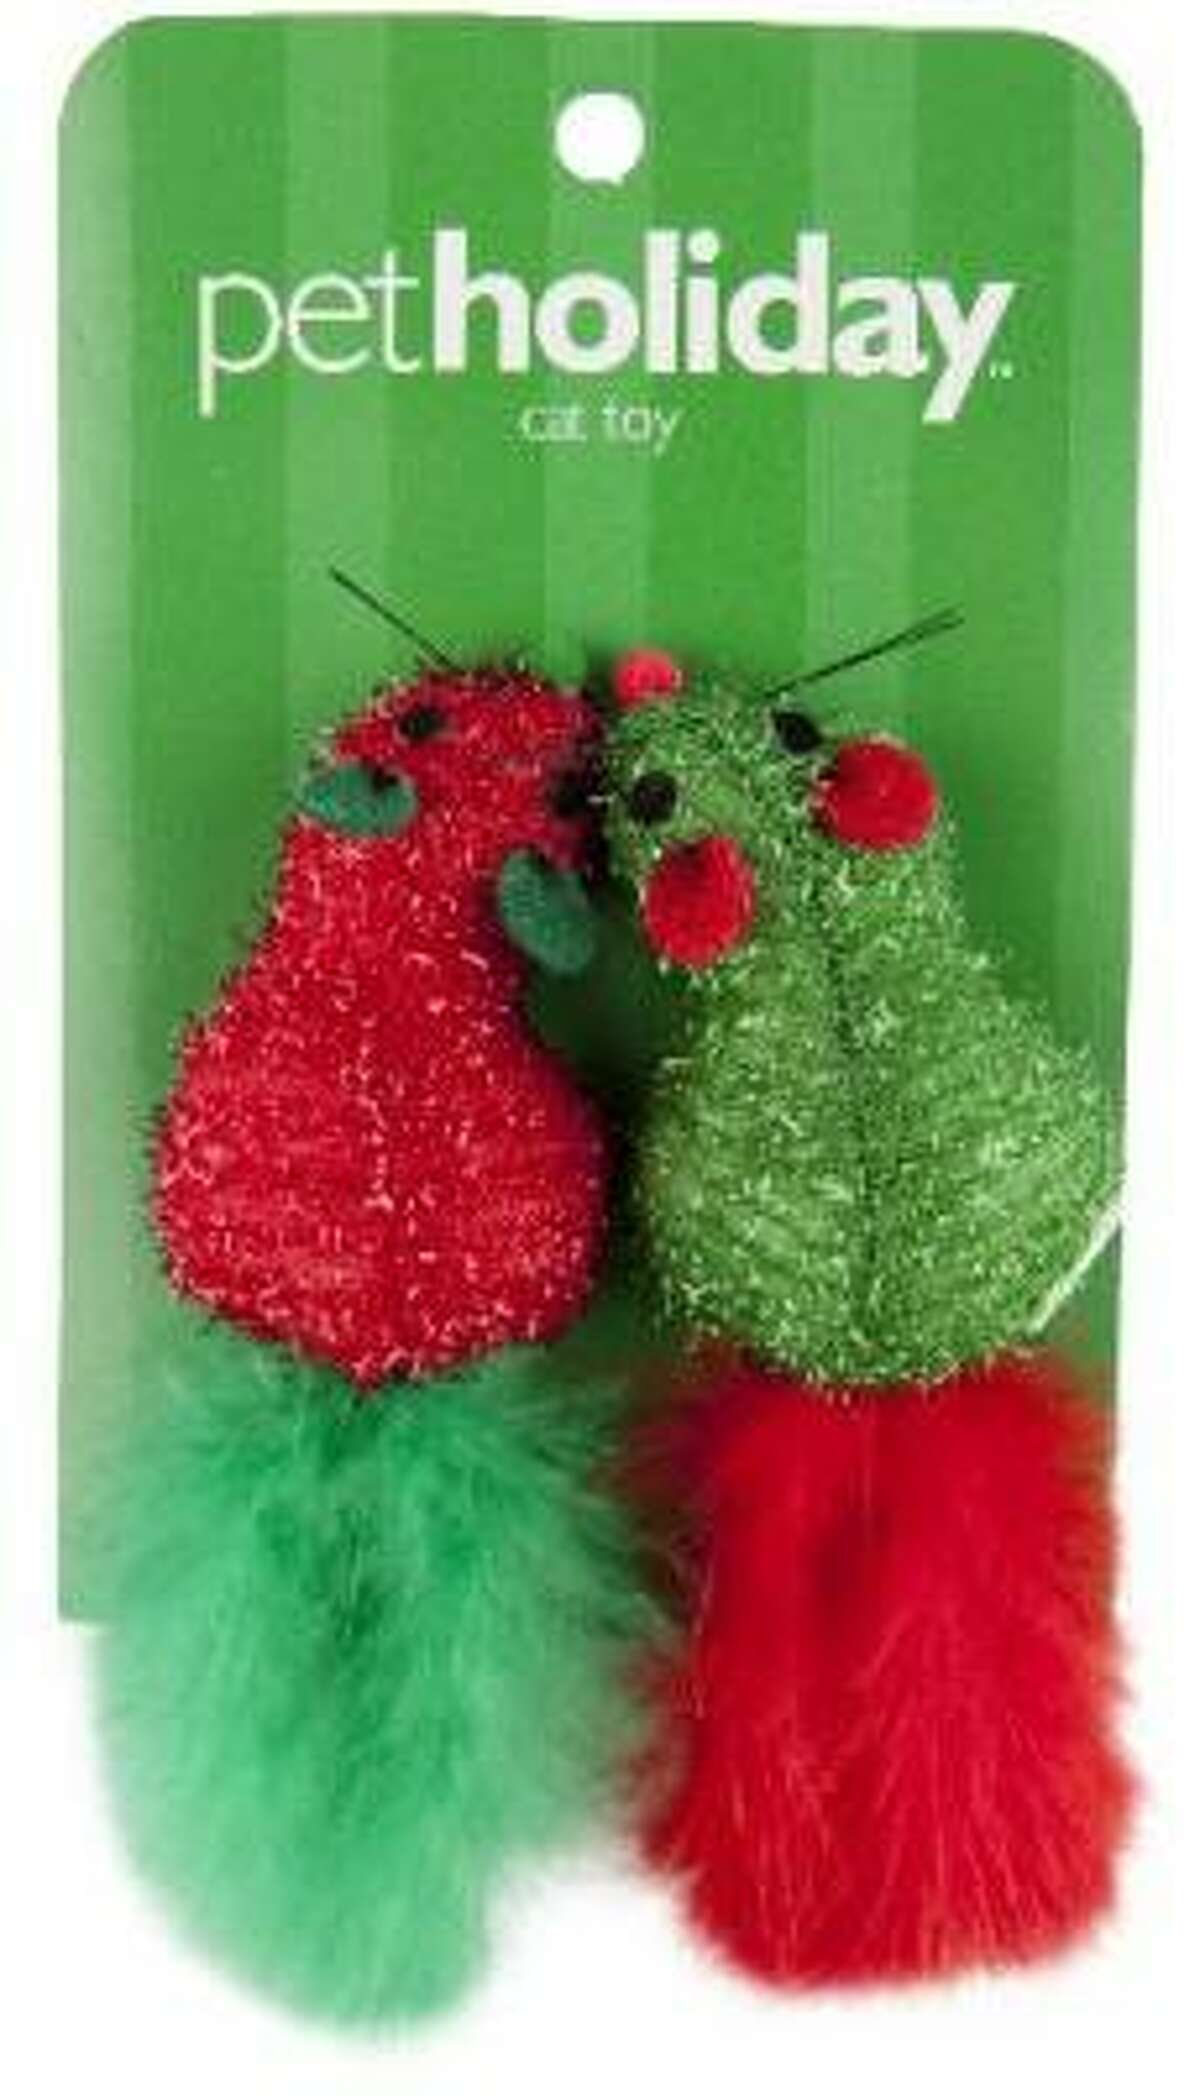 Holiday cat toys: Holiday-themed mouse toys for cats. $2.99, PetSmart